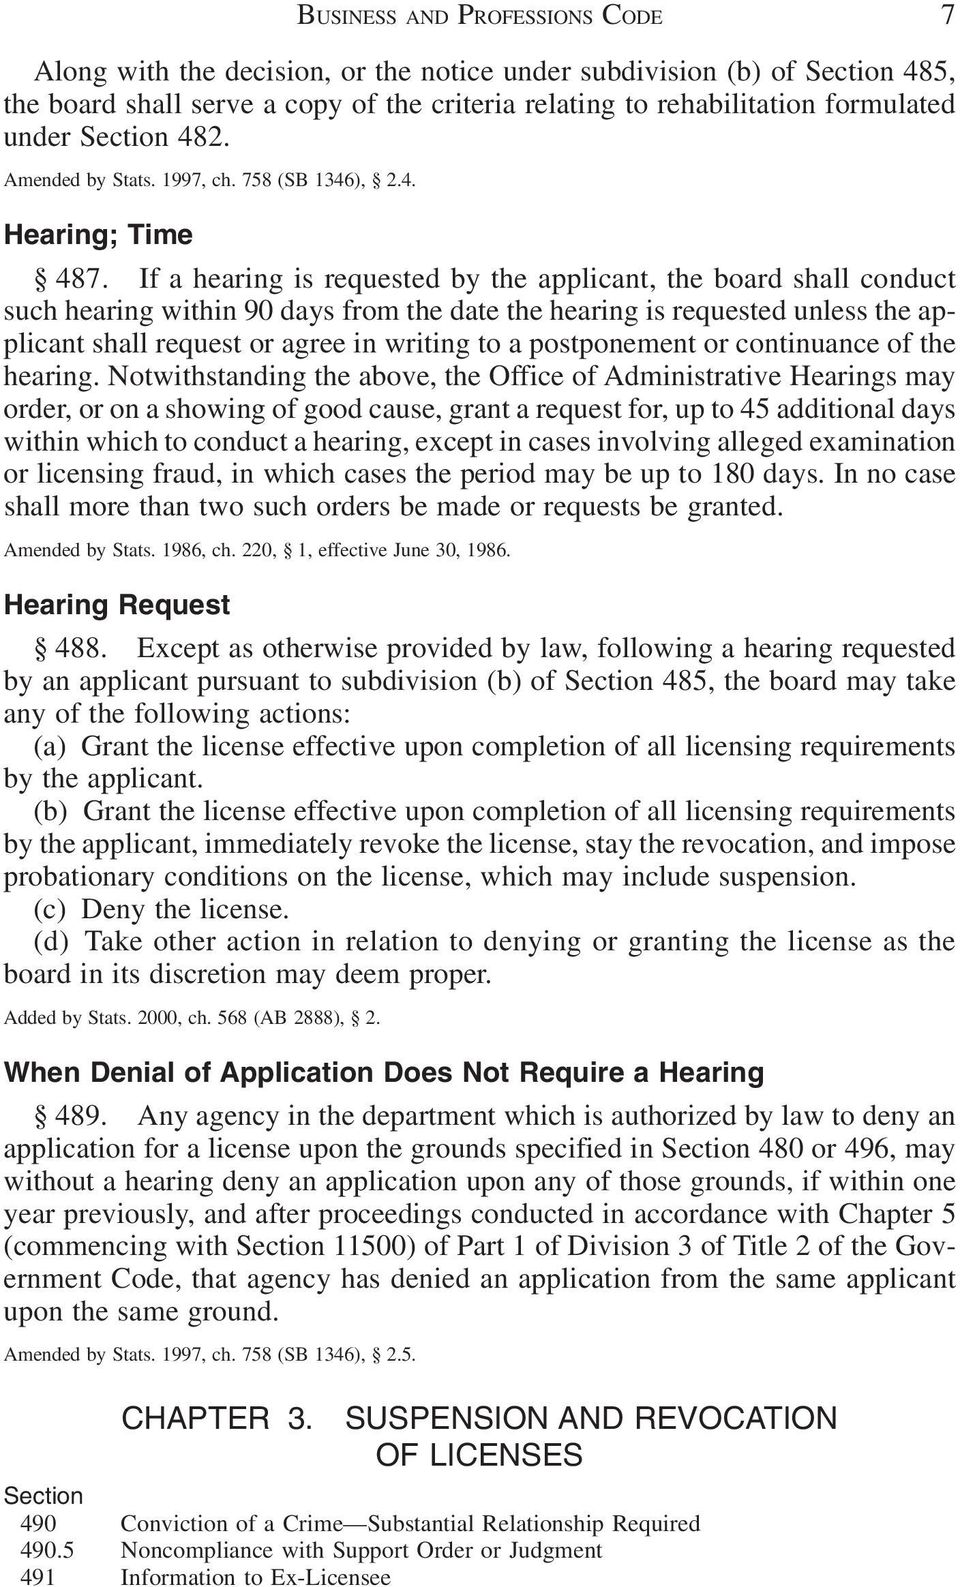 If a hearing is requested by the applicant, the board shall conduct such hearing within 90 days from the date the hearing is requested unless the applicant shall request or agree in writing to a